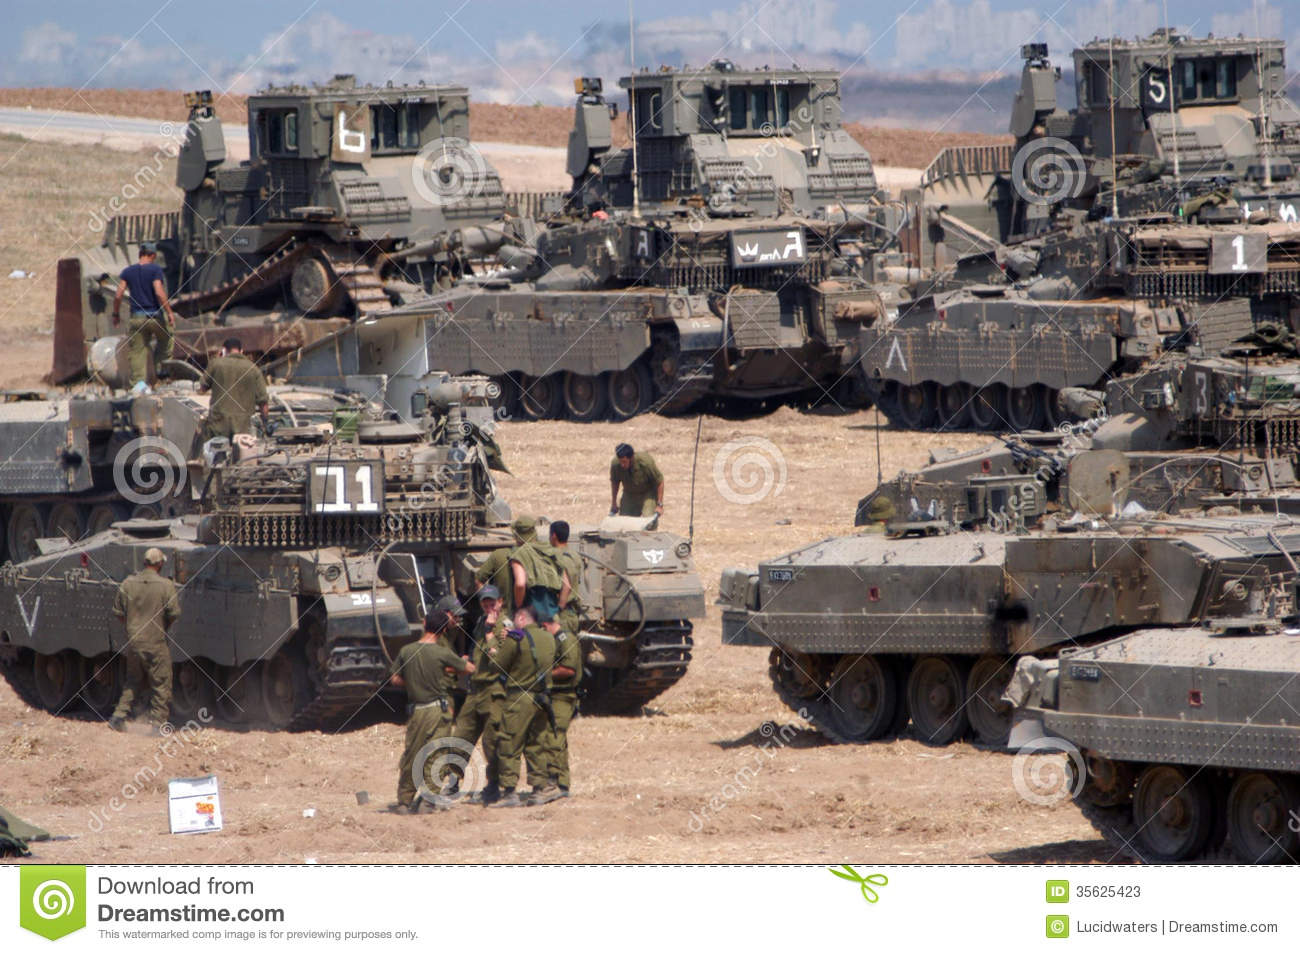 Can paraphrased? gaza strip disengagement right! think